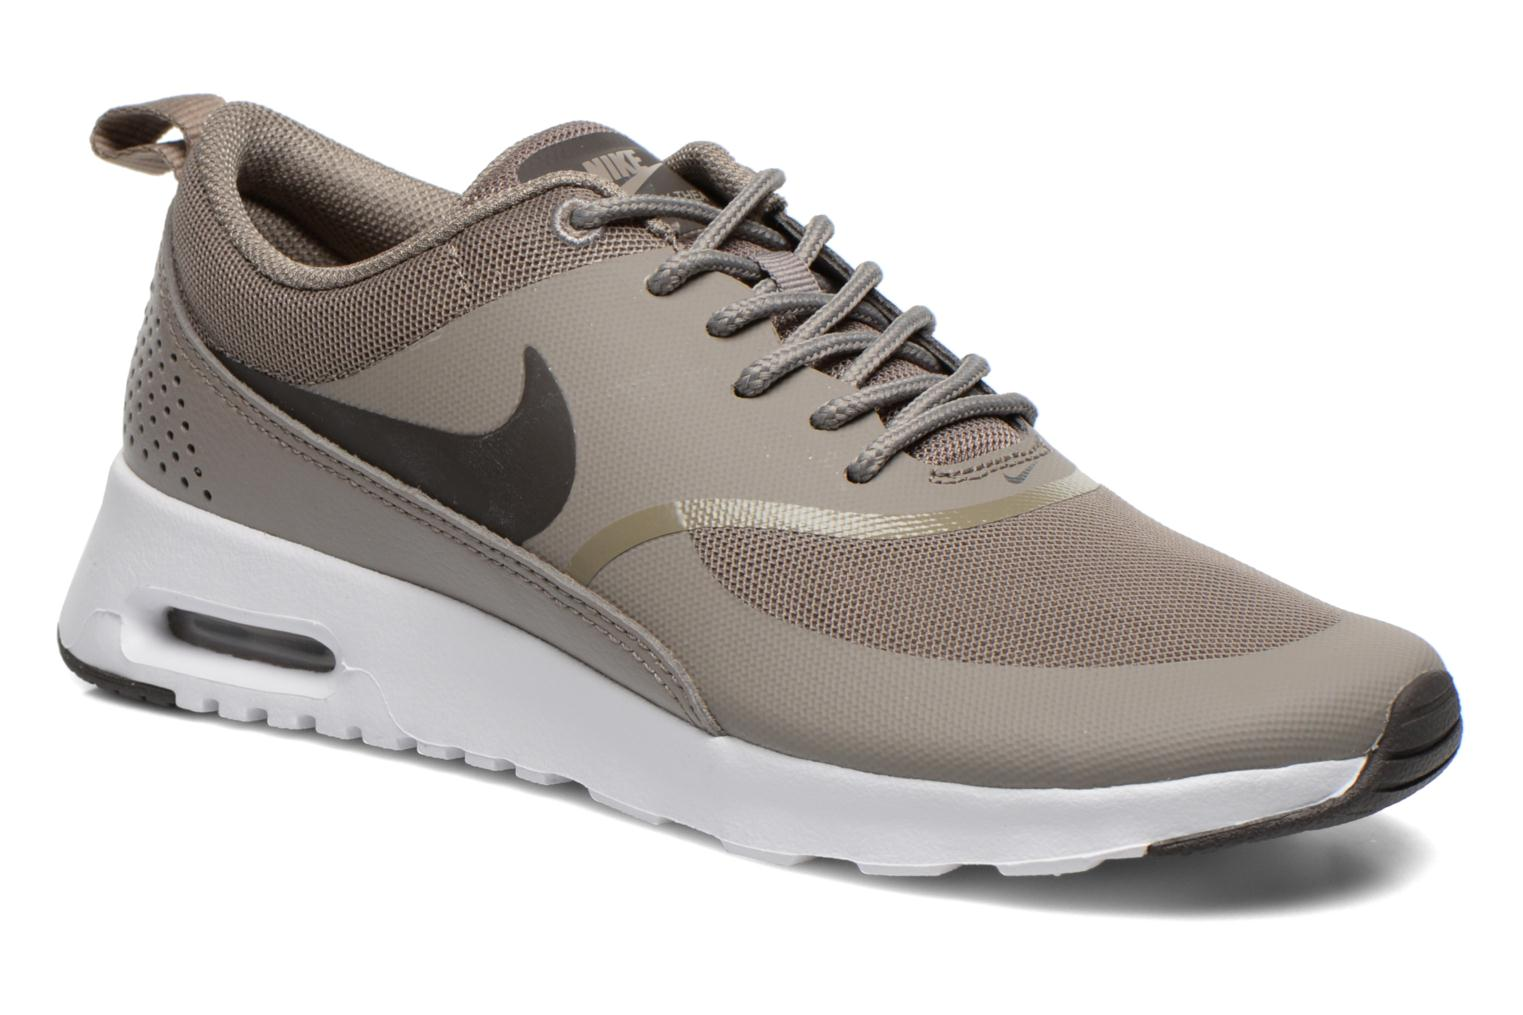 newest 0de8d f4d5e ... Trainers Nike Wmns Nike Air Max Thea Beige detailed view Pair view .